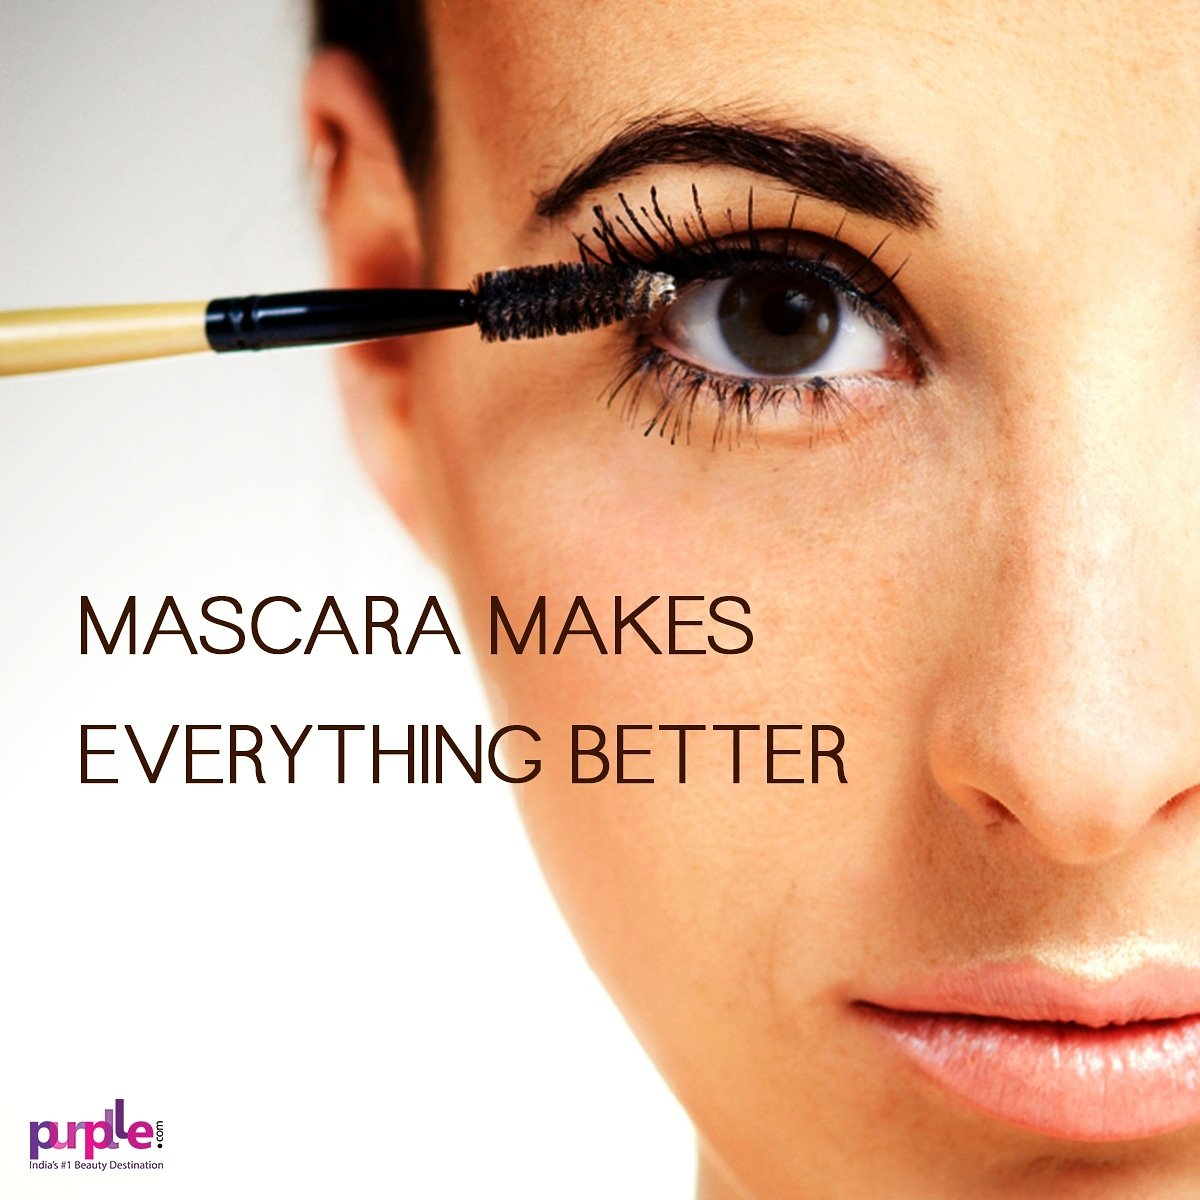 5eadabac3ad Trust us, mascara makes everything better! So pull out your favorite mascara  and glam up your lashes. #eyes #mascara #beautymotivation #letspurplle  #beauty ...